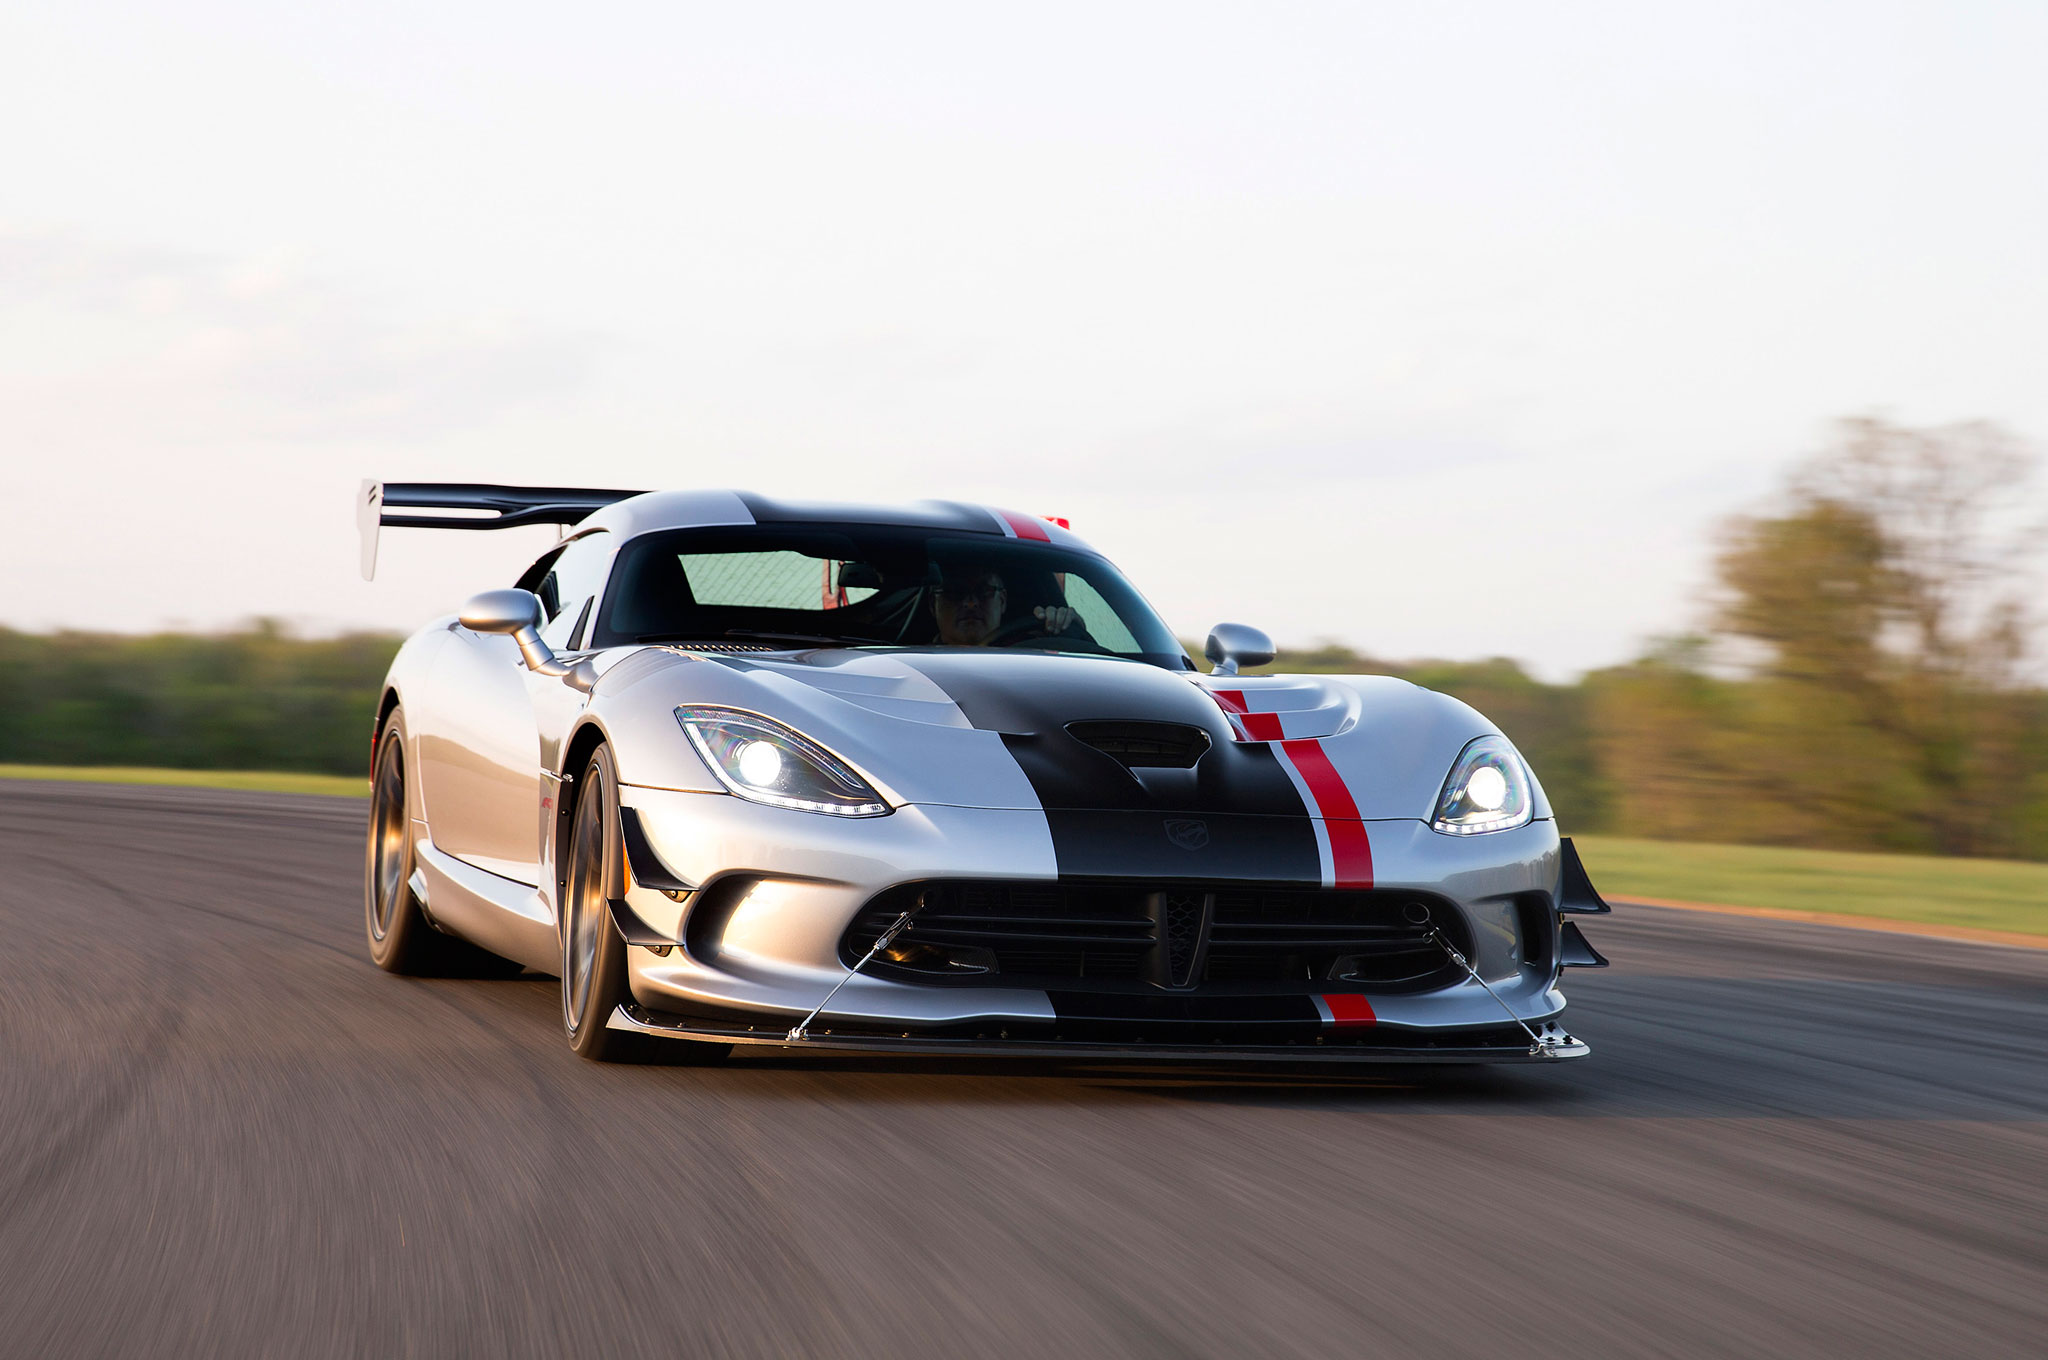 2016 Dodge Viper ACR Front View Motion